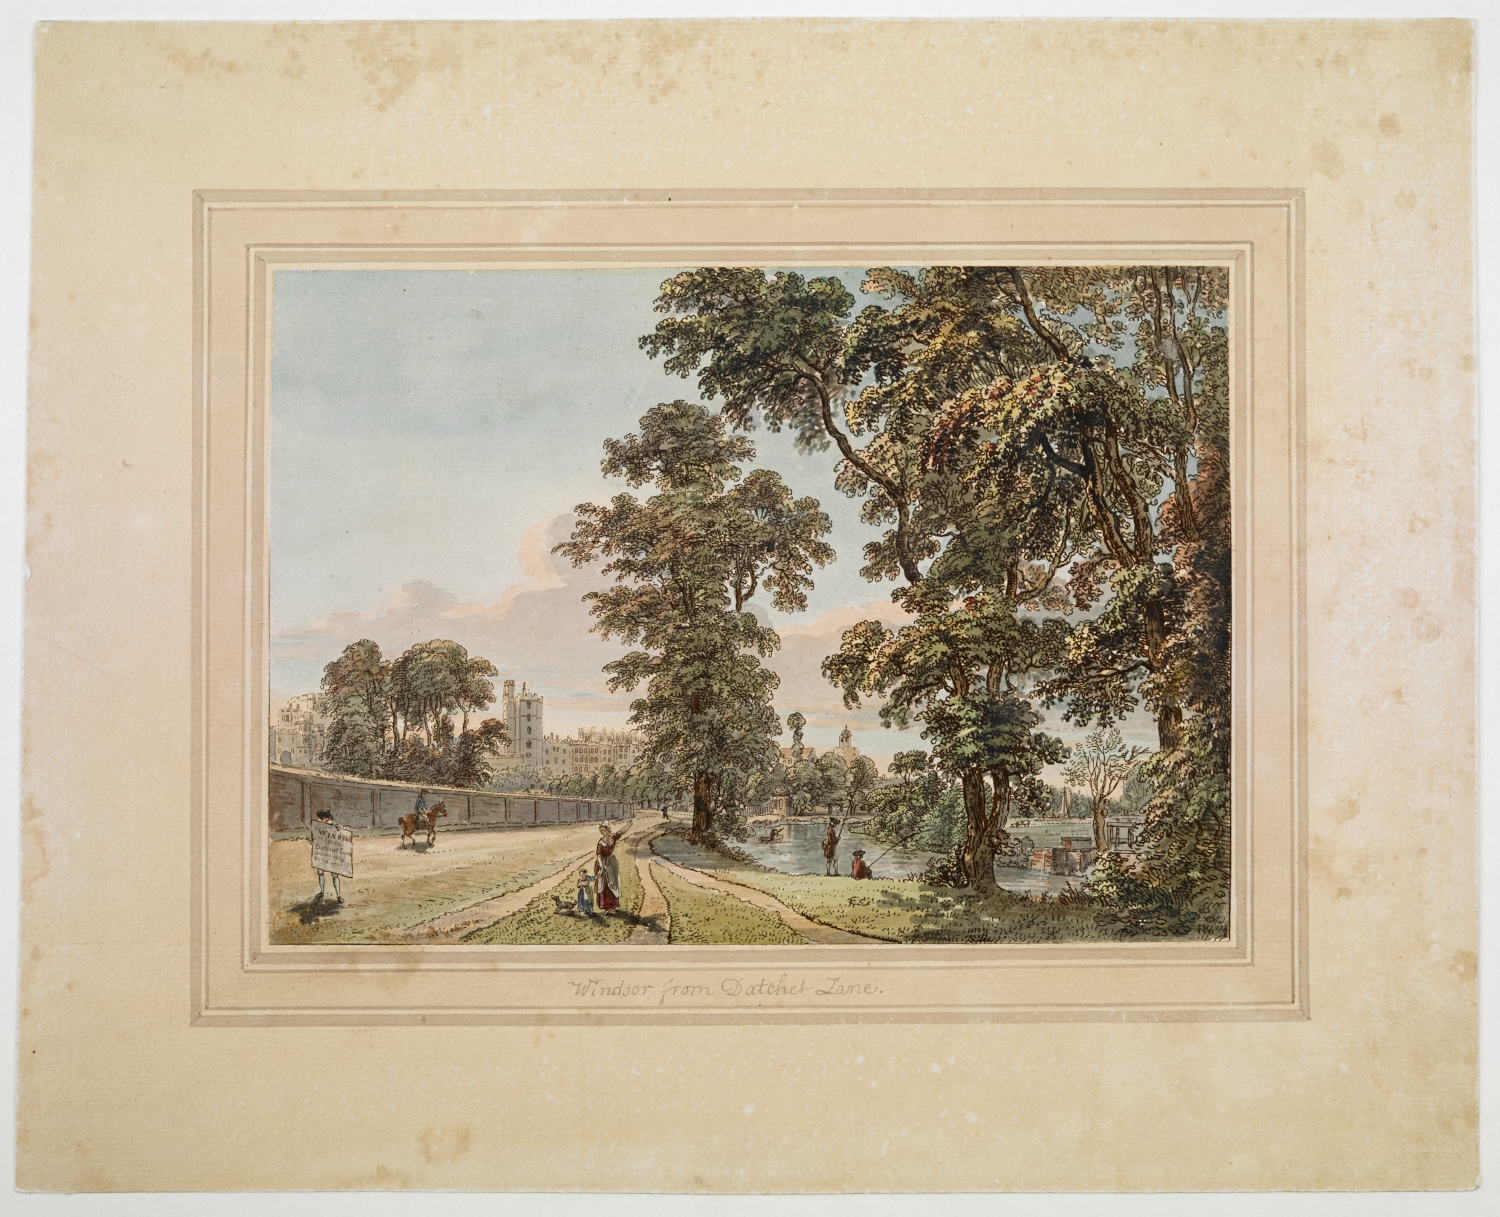 ummary: View across parkland with people fishing on the banks of the river to right, a woman and child on the path, pointing back at Windsor, which is seen among trees in the background and looking to left at a man who carries a placard inscribed 'Windsor from Datchet Lane Drawn 1769 Etch'd 1780'. Bears title inscribed in black ink below image on washline mount. Inscribed '11 tab fol 6' in blue crayon on verso.